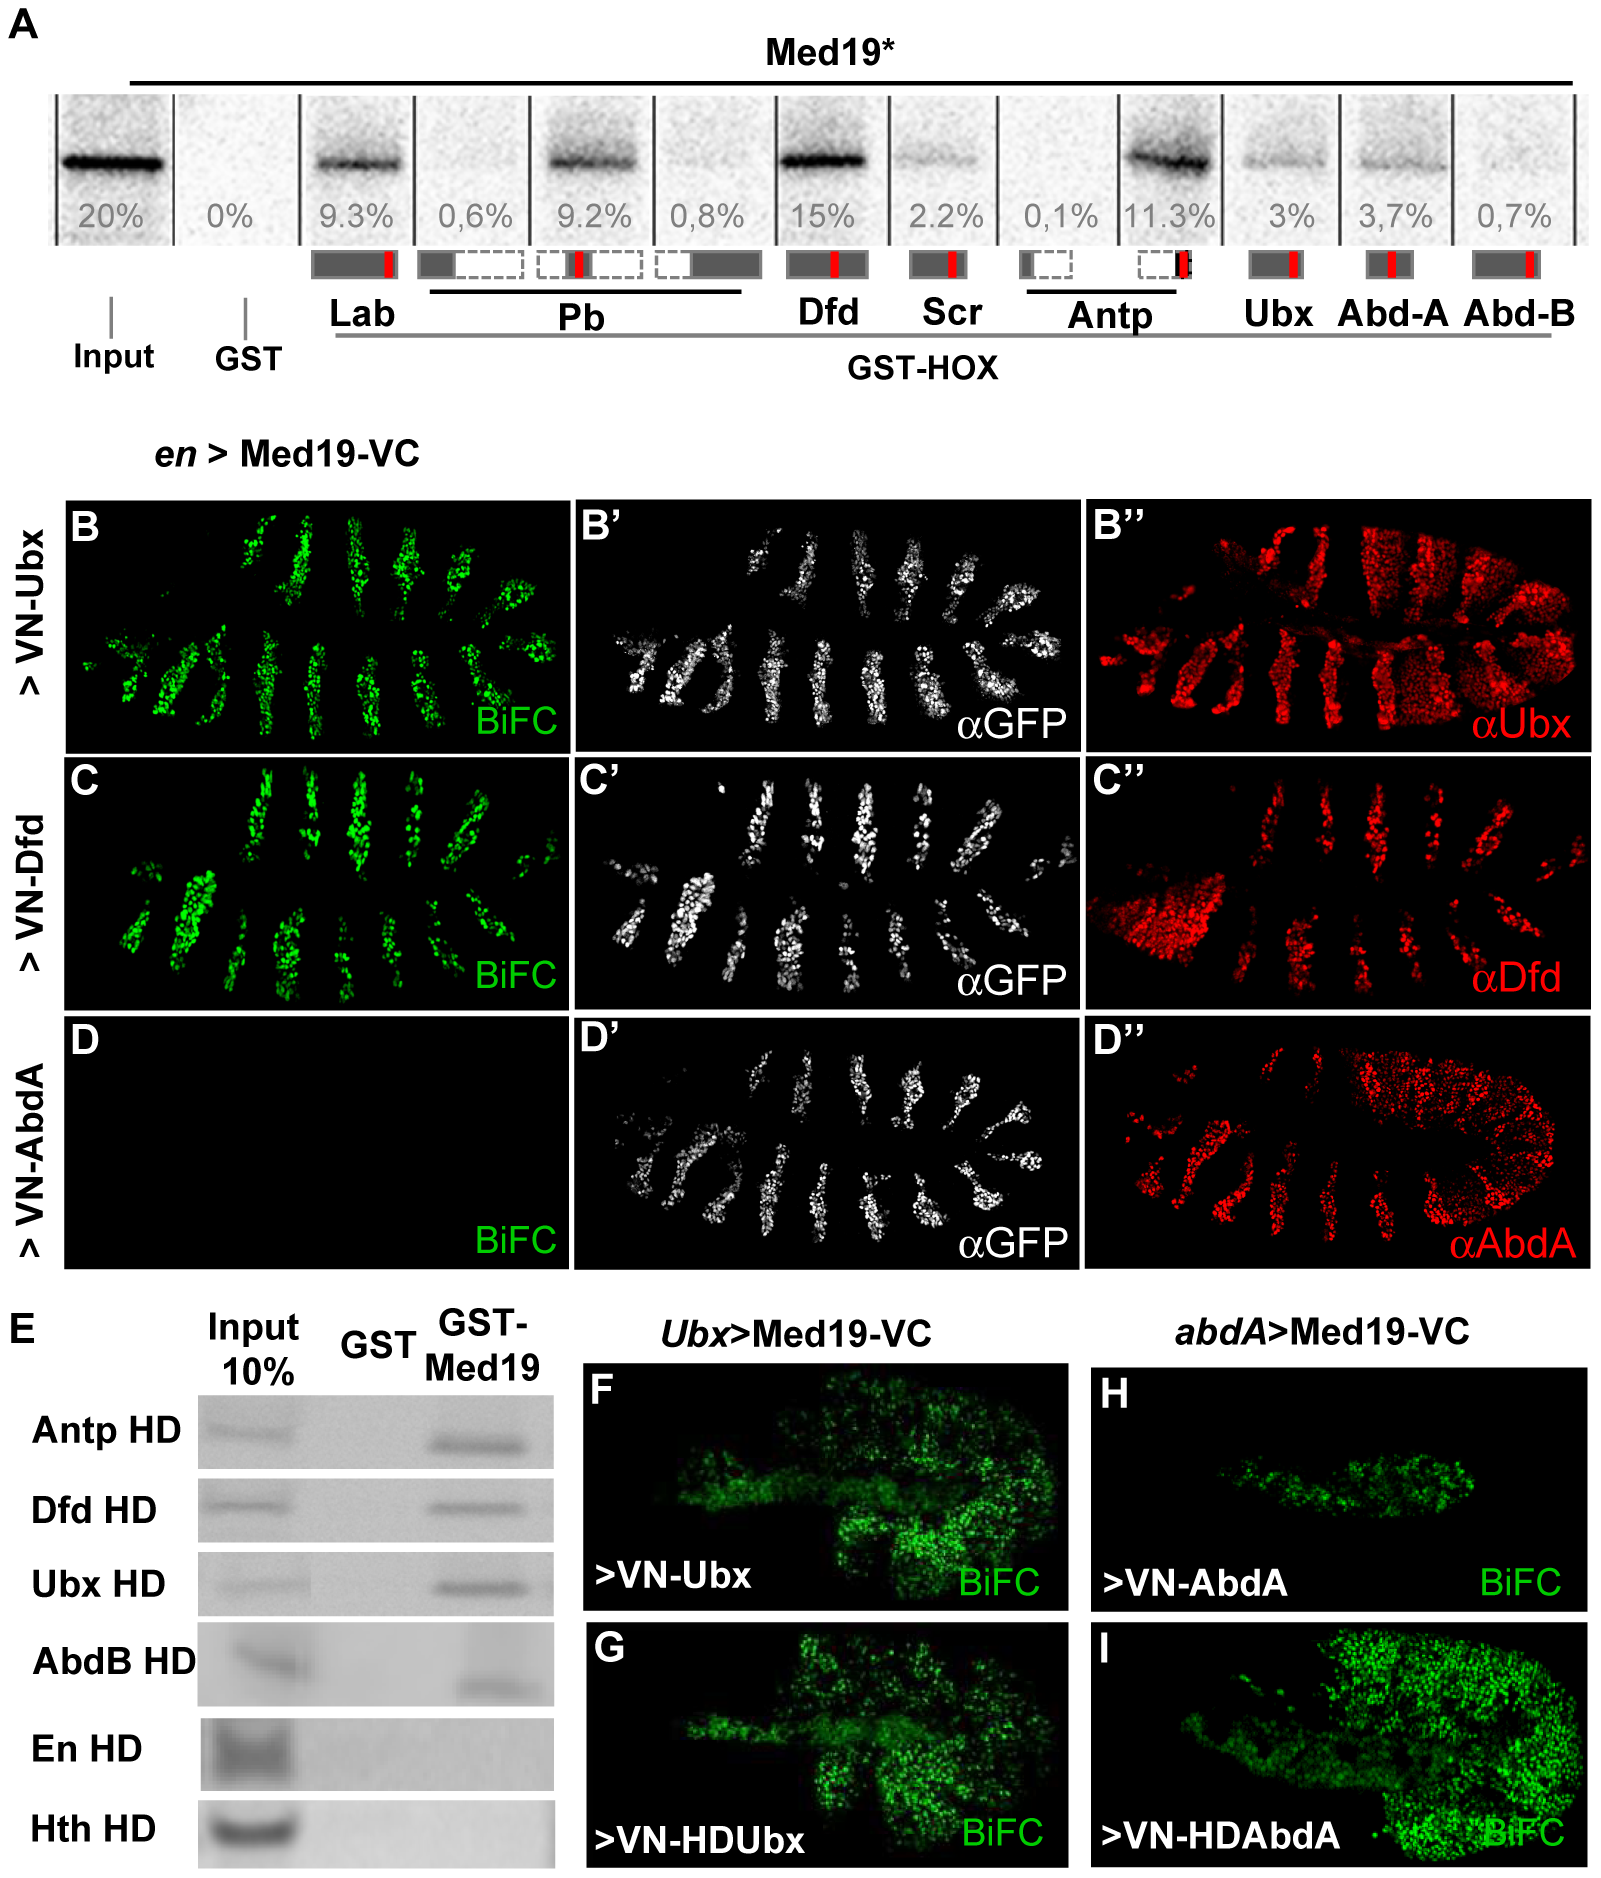 Hox proteins bind Med19 through their homeodomains <i>in vitro</i> and <i>in vivo</i>.